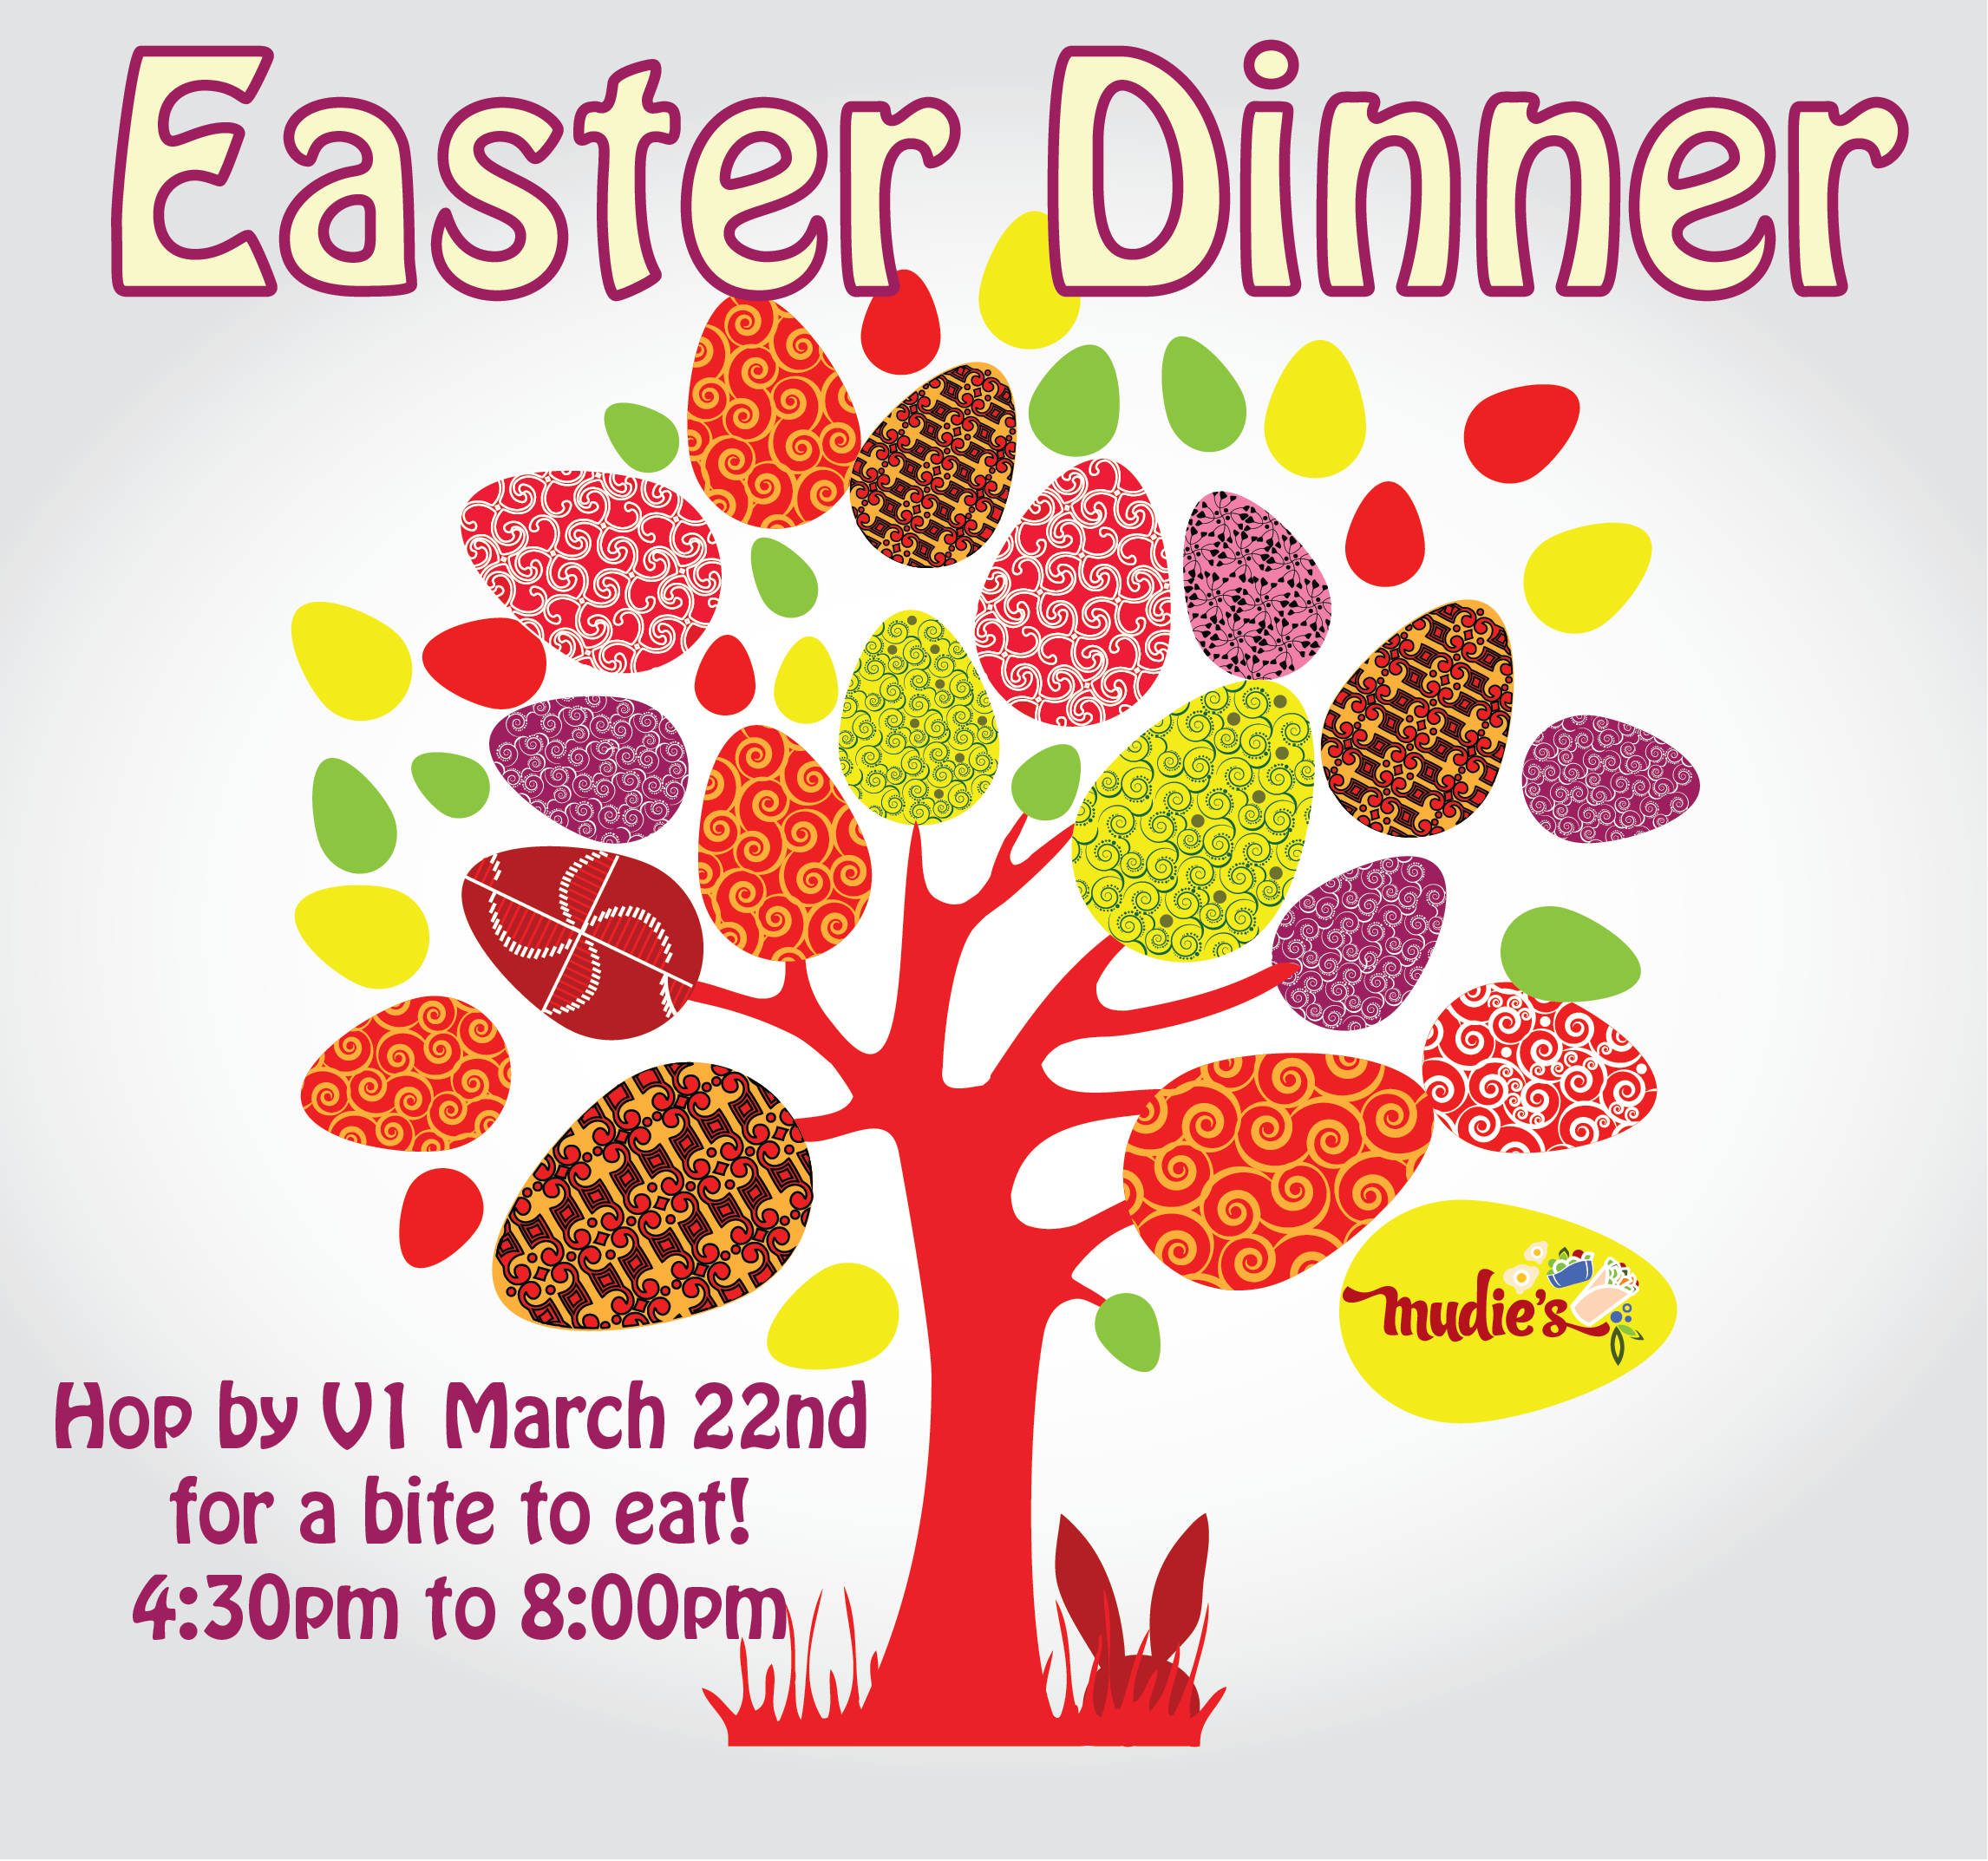 Easter Dinner Hop over to V1 March 22nd for Easter dinner